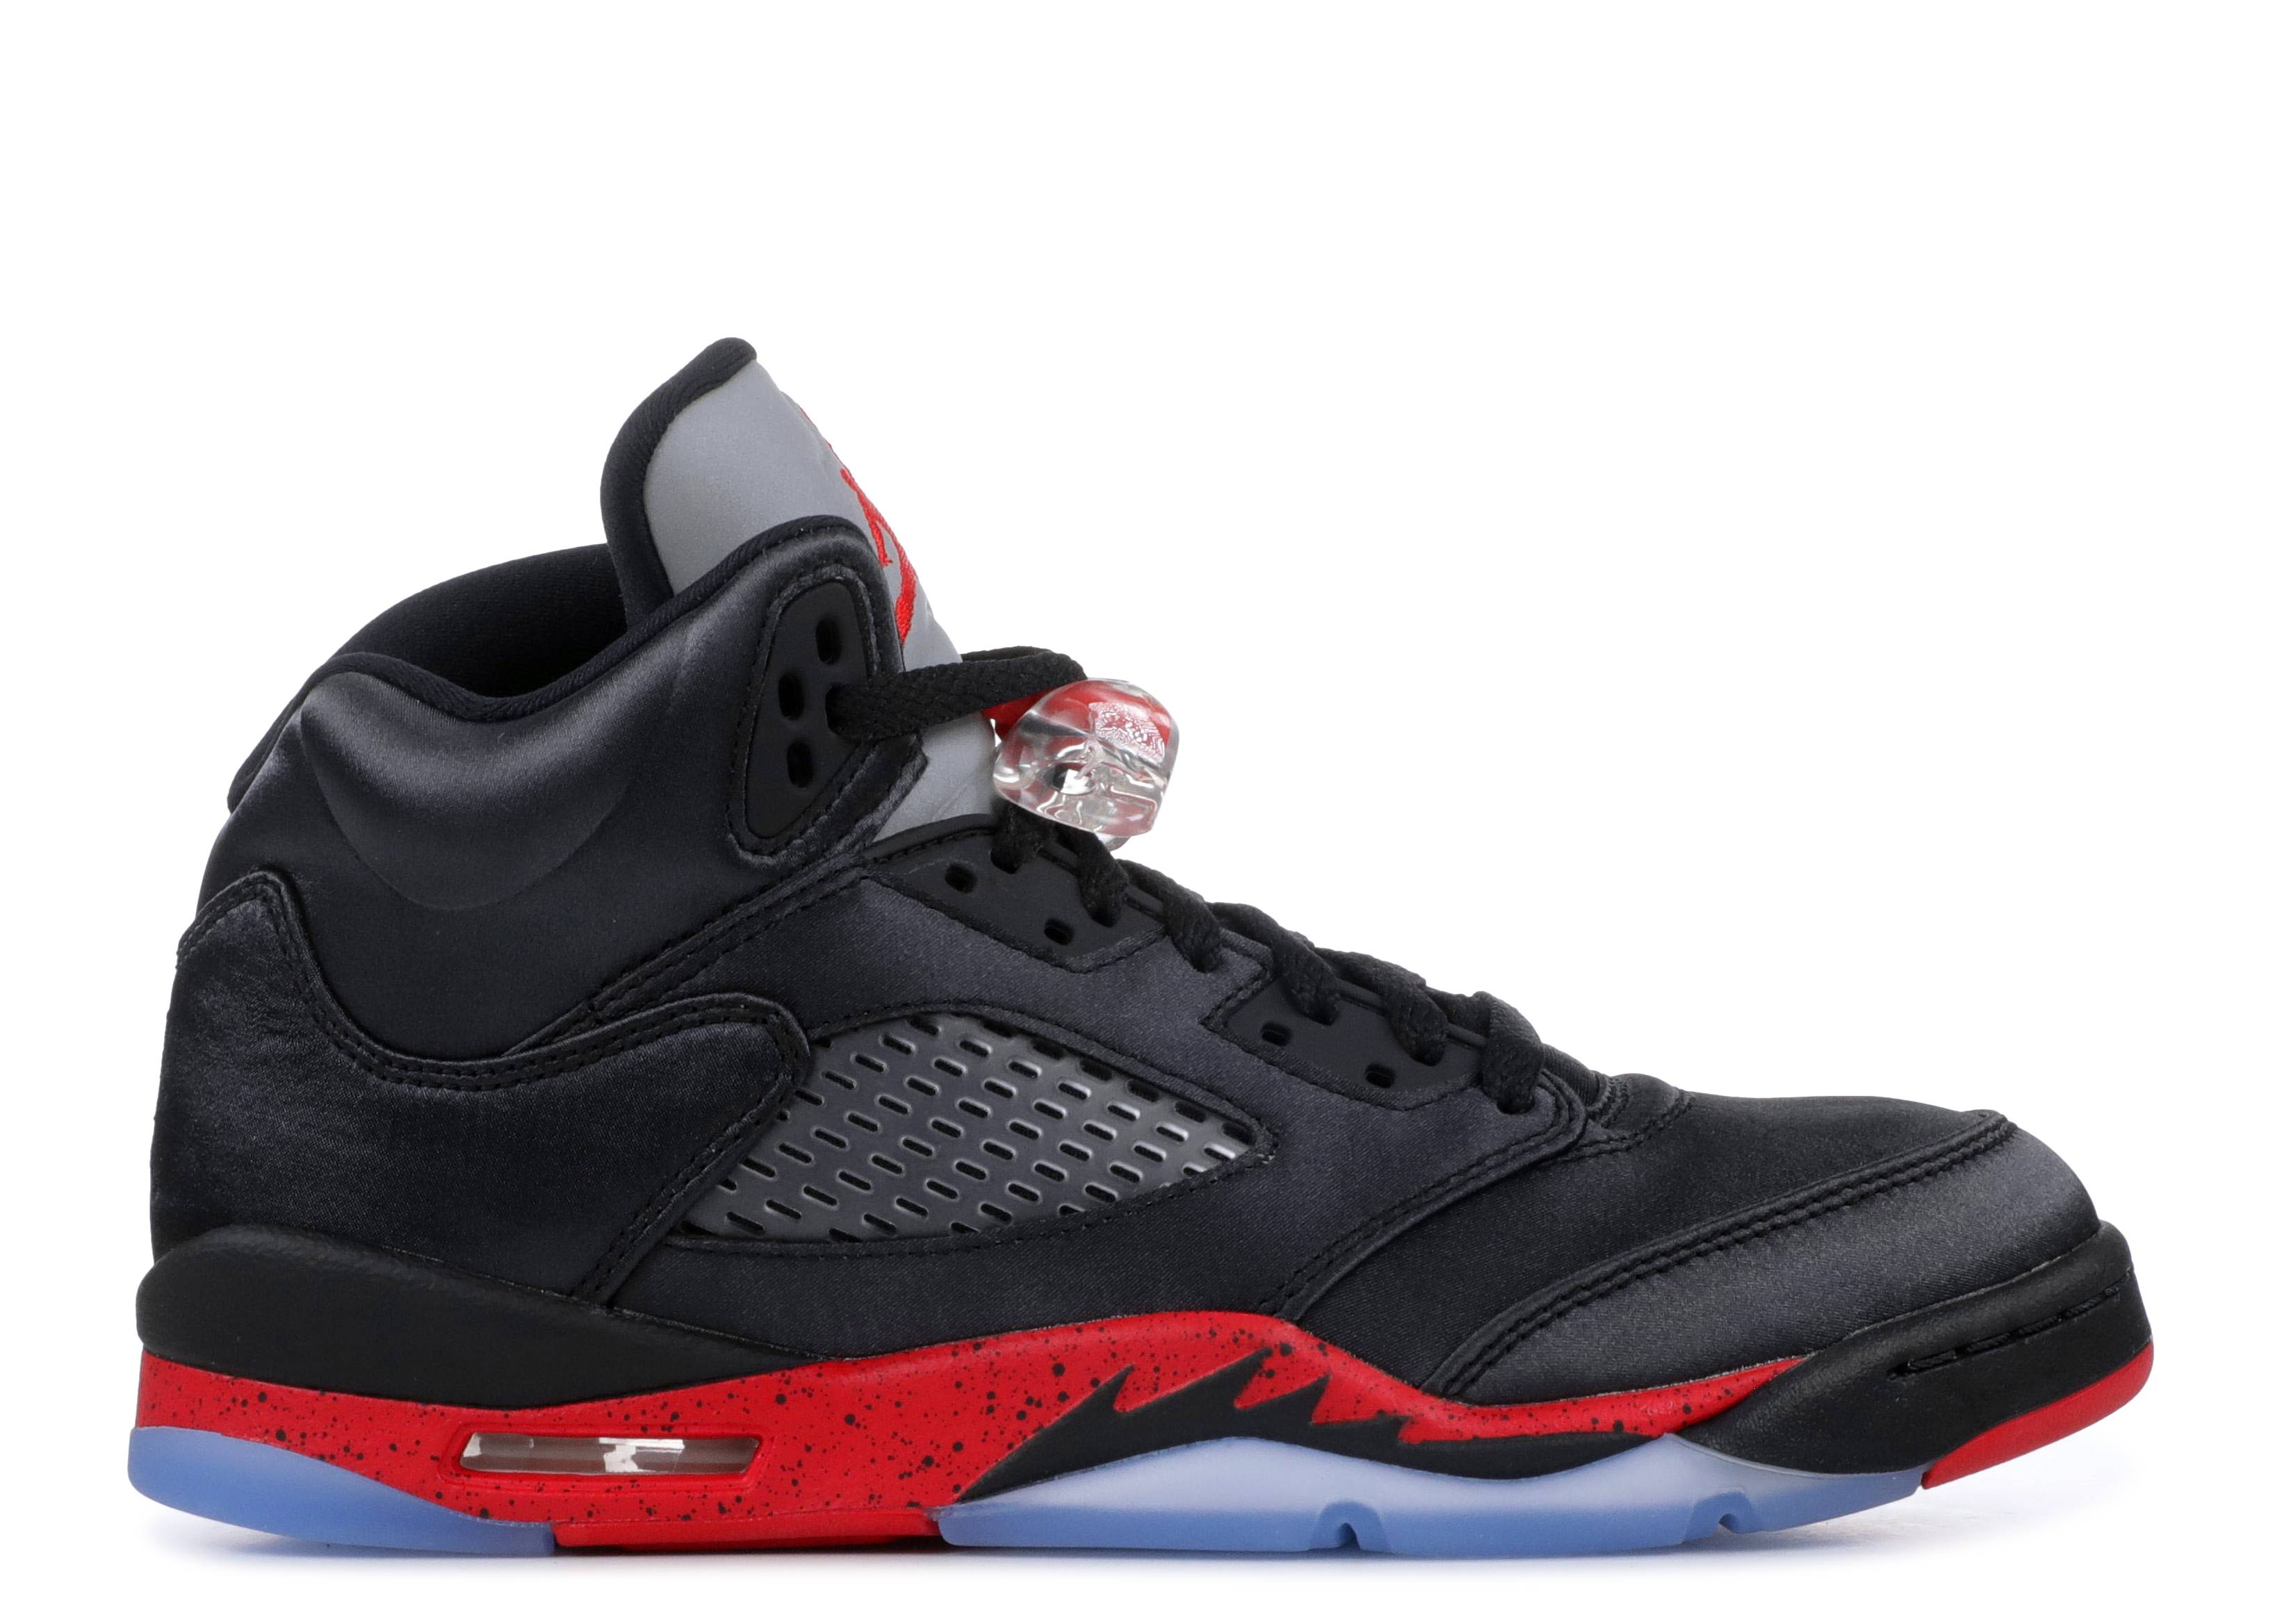 new product 7144c ecb6d Air Jordan 5 (V) - Nike | Flight Club